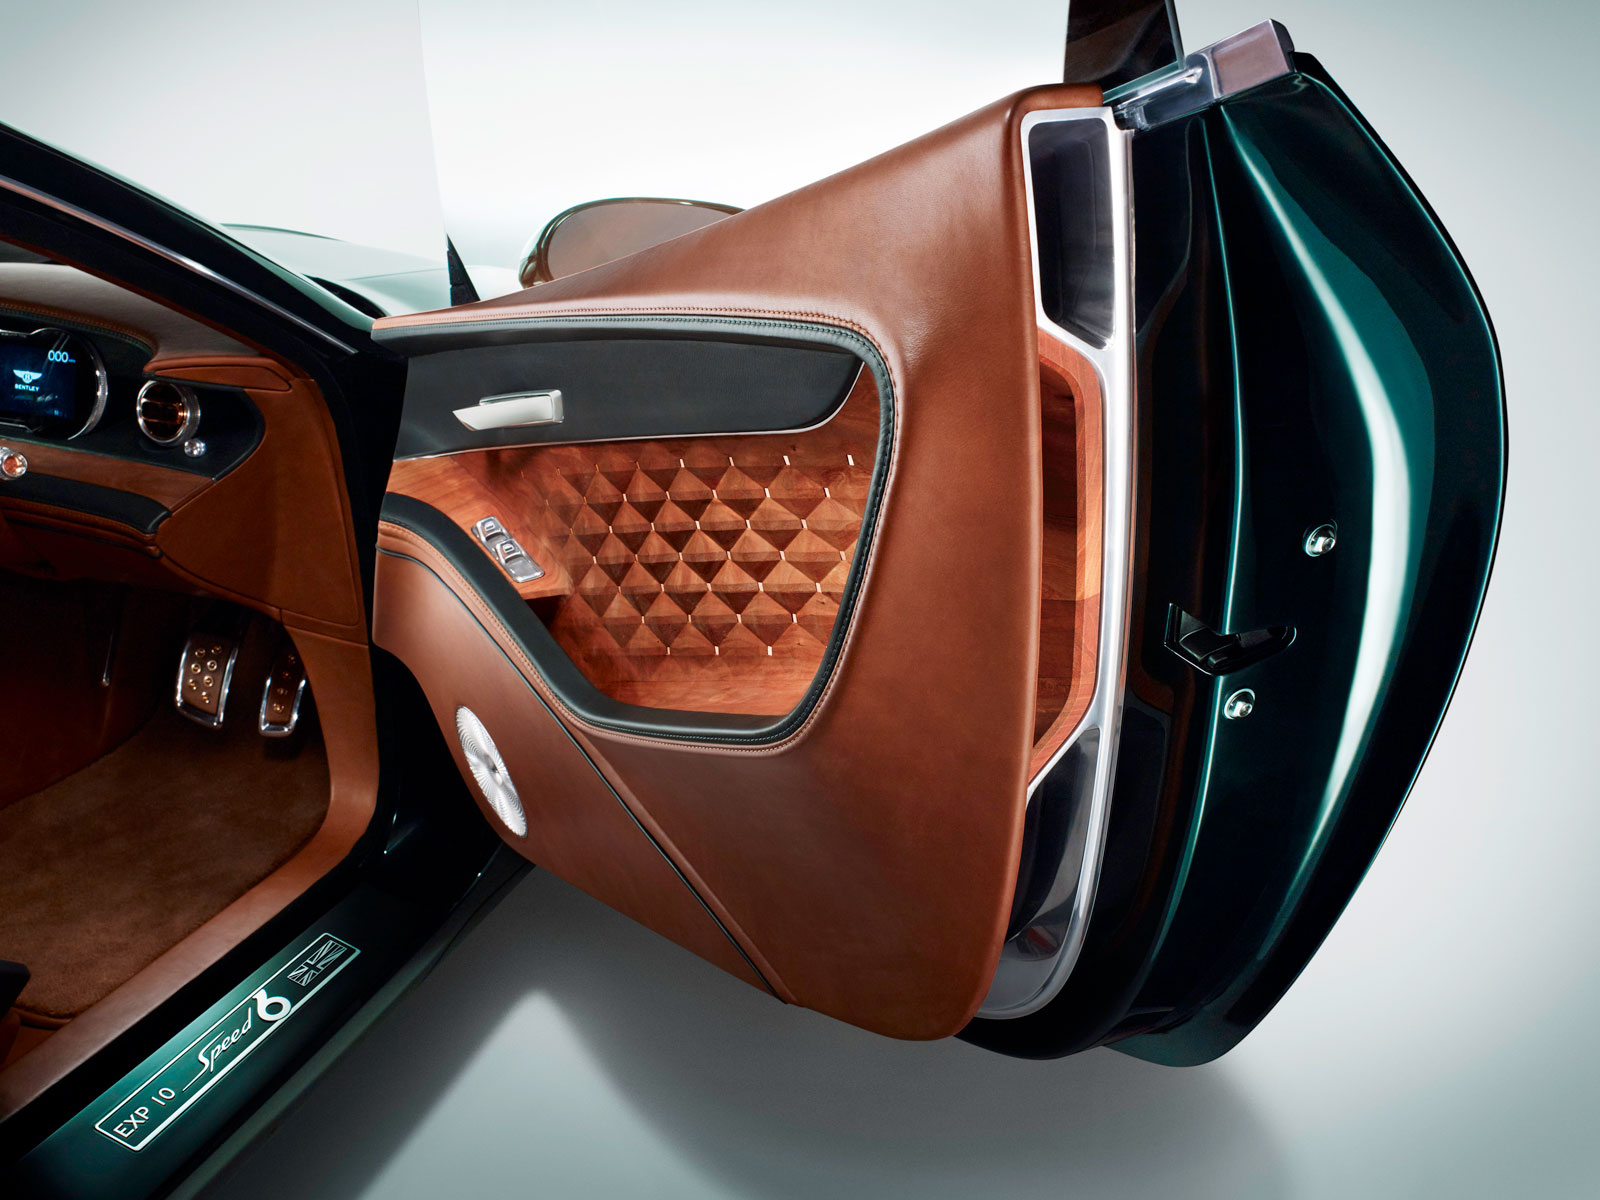 Bentley Exp 10 Speed 6 Concept Interior Door Panel Car Body Design